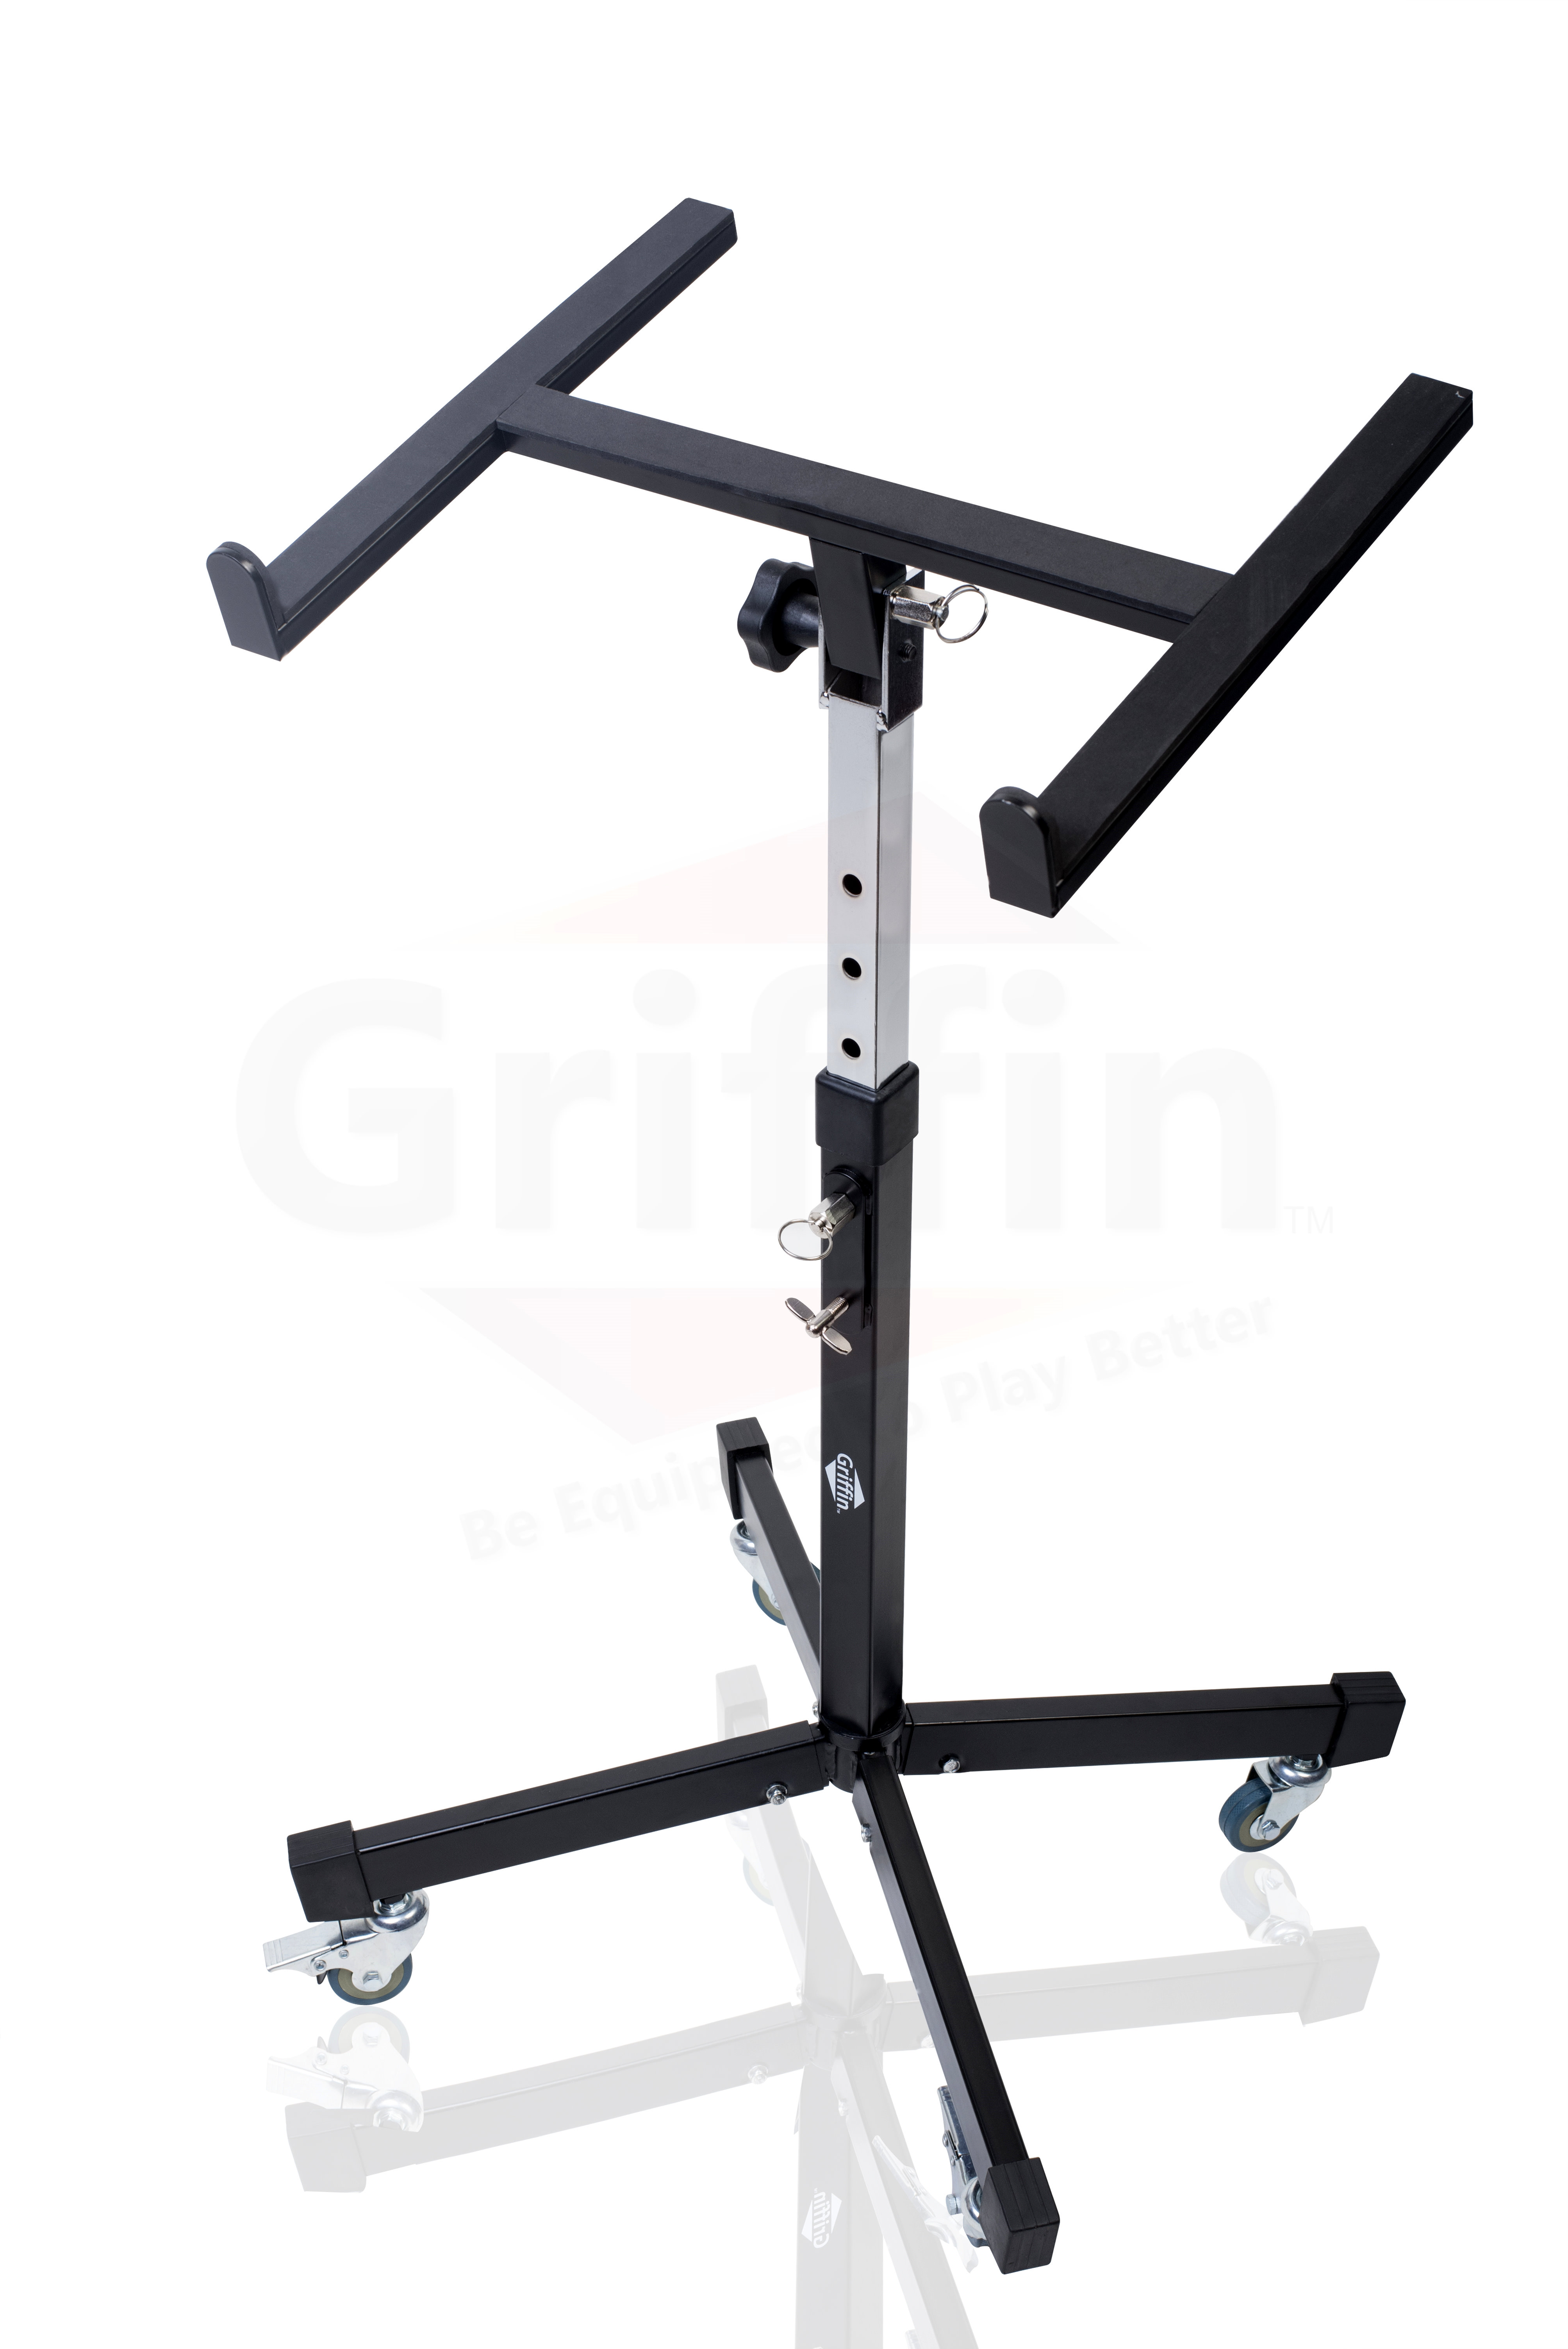 mobile studio mixer stand dj cart by griffin rolling standing rack on casters ace division inc. Black Bedroom Furniture Sets. Home Design Ideas